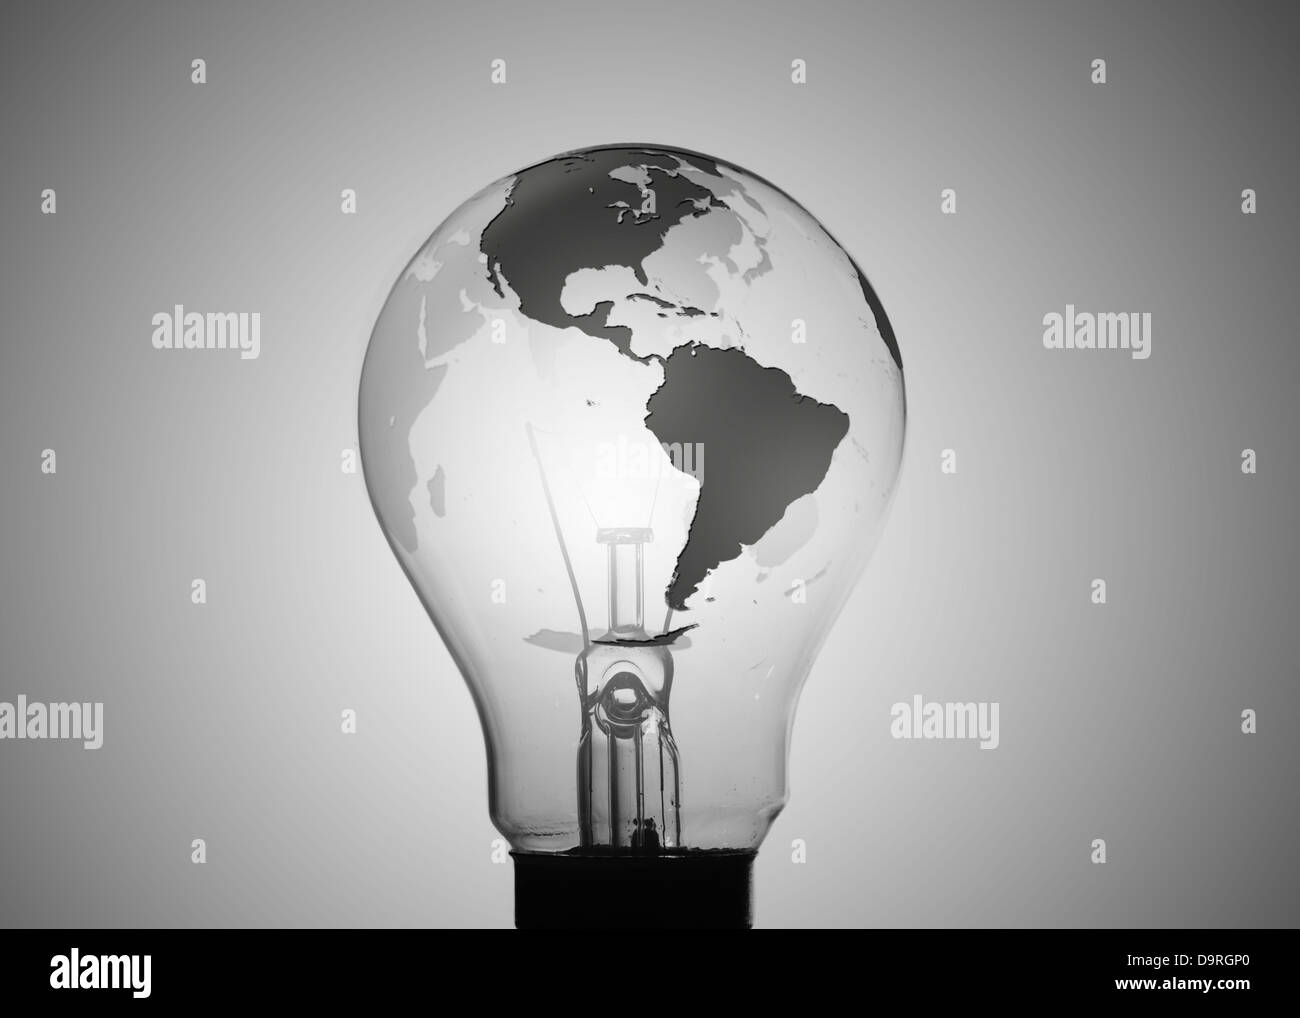 Light bulb with map of earth on its surface - Stock Image